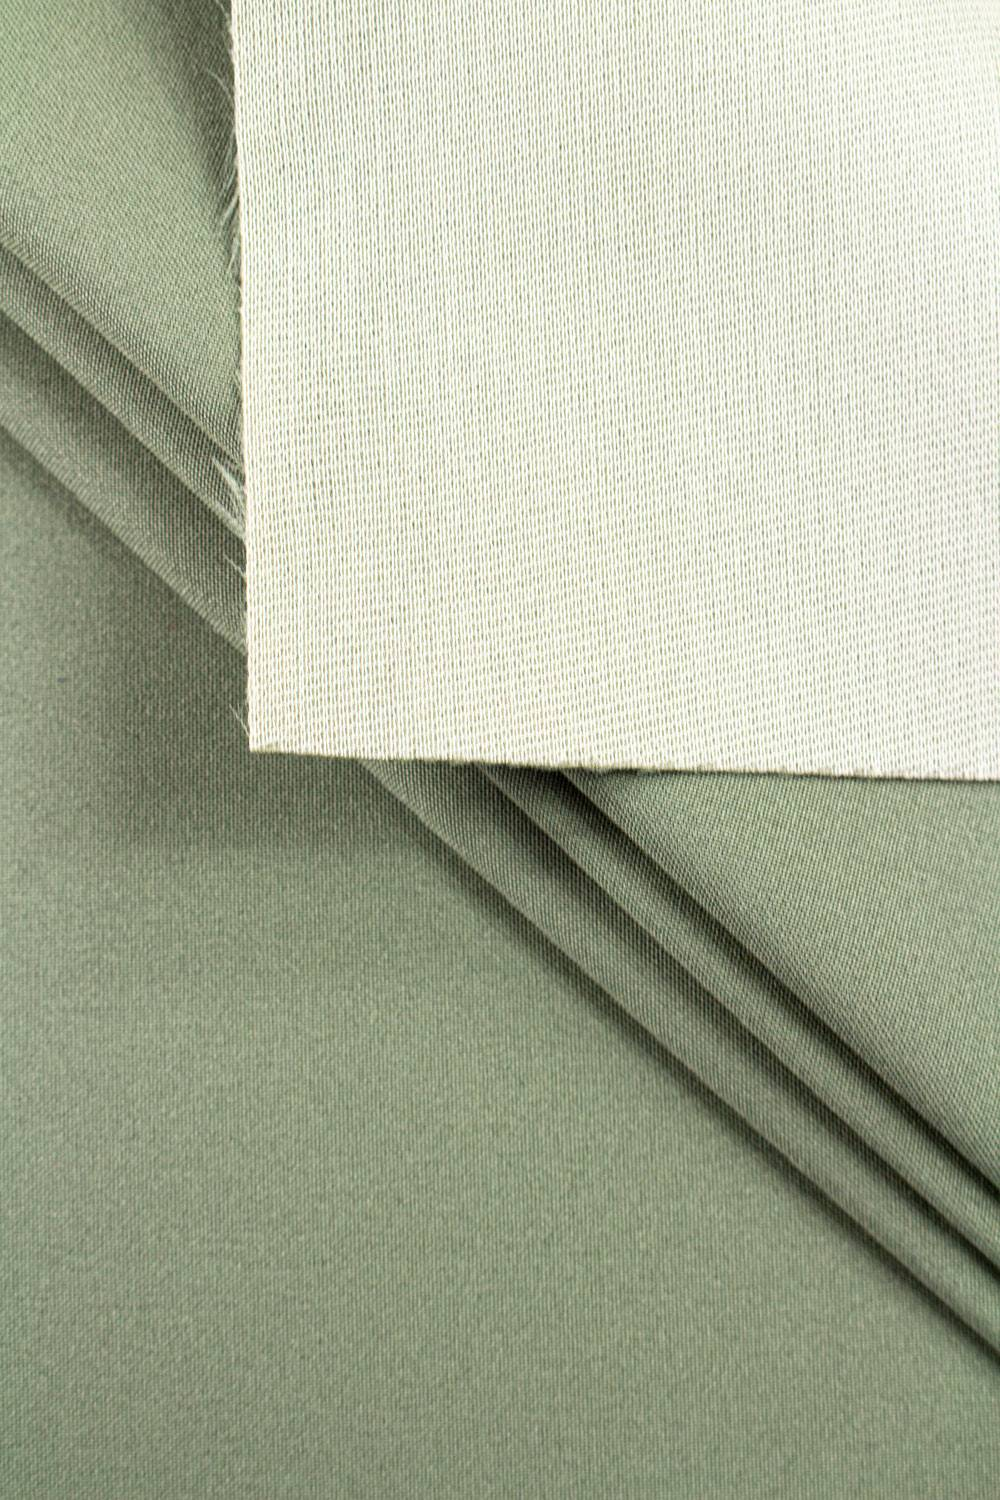 Fabric - Stretch on foam - Olive - 150cm 250g/m2